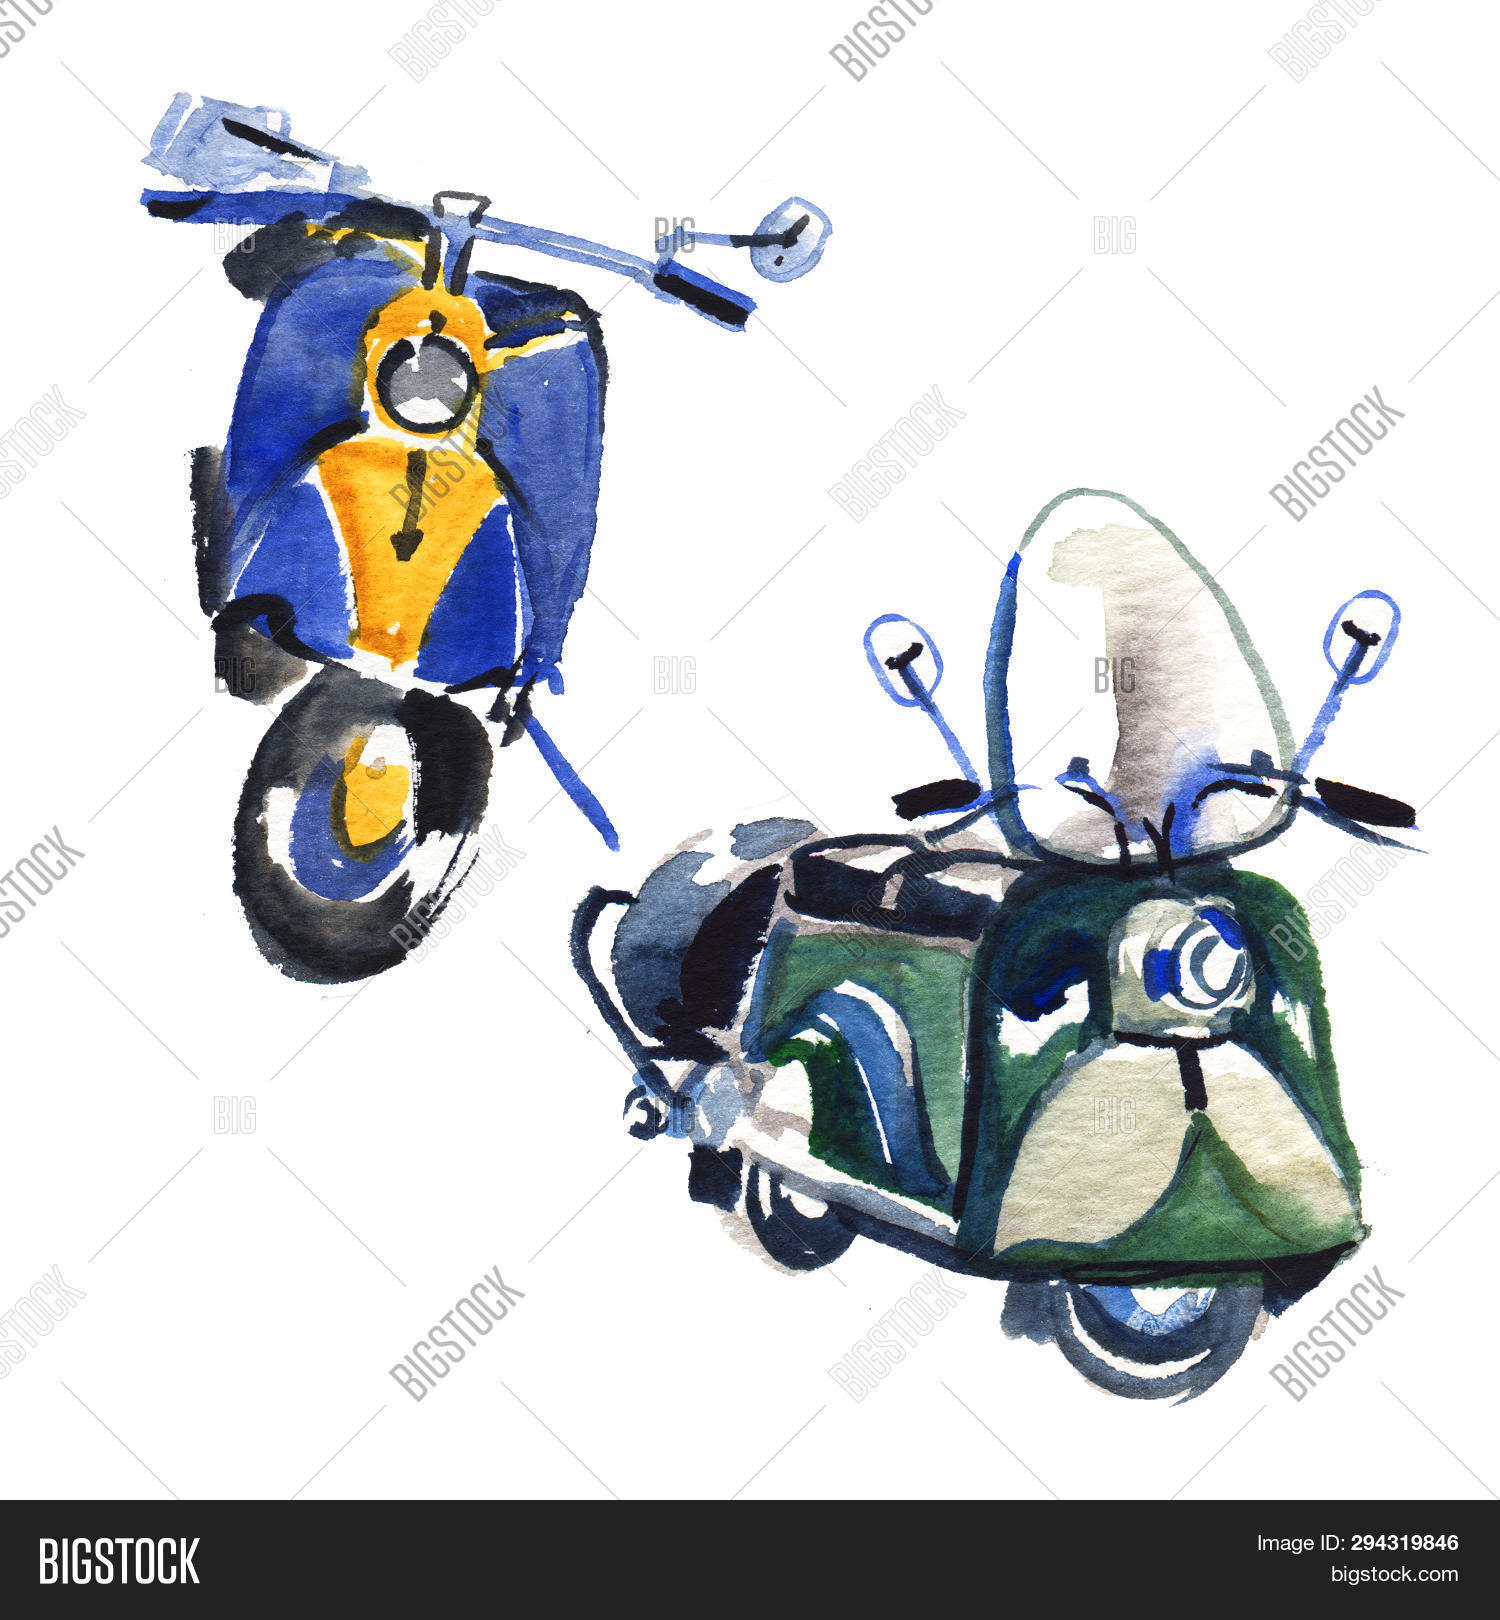 Vintage Scooter Image Photo Free Trial Bigstock